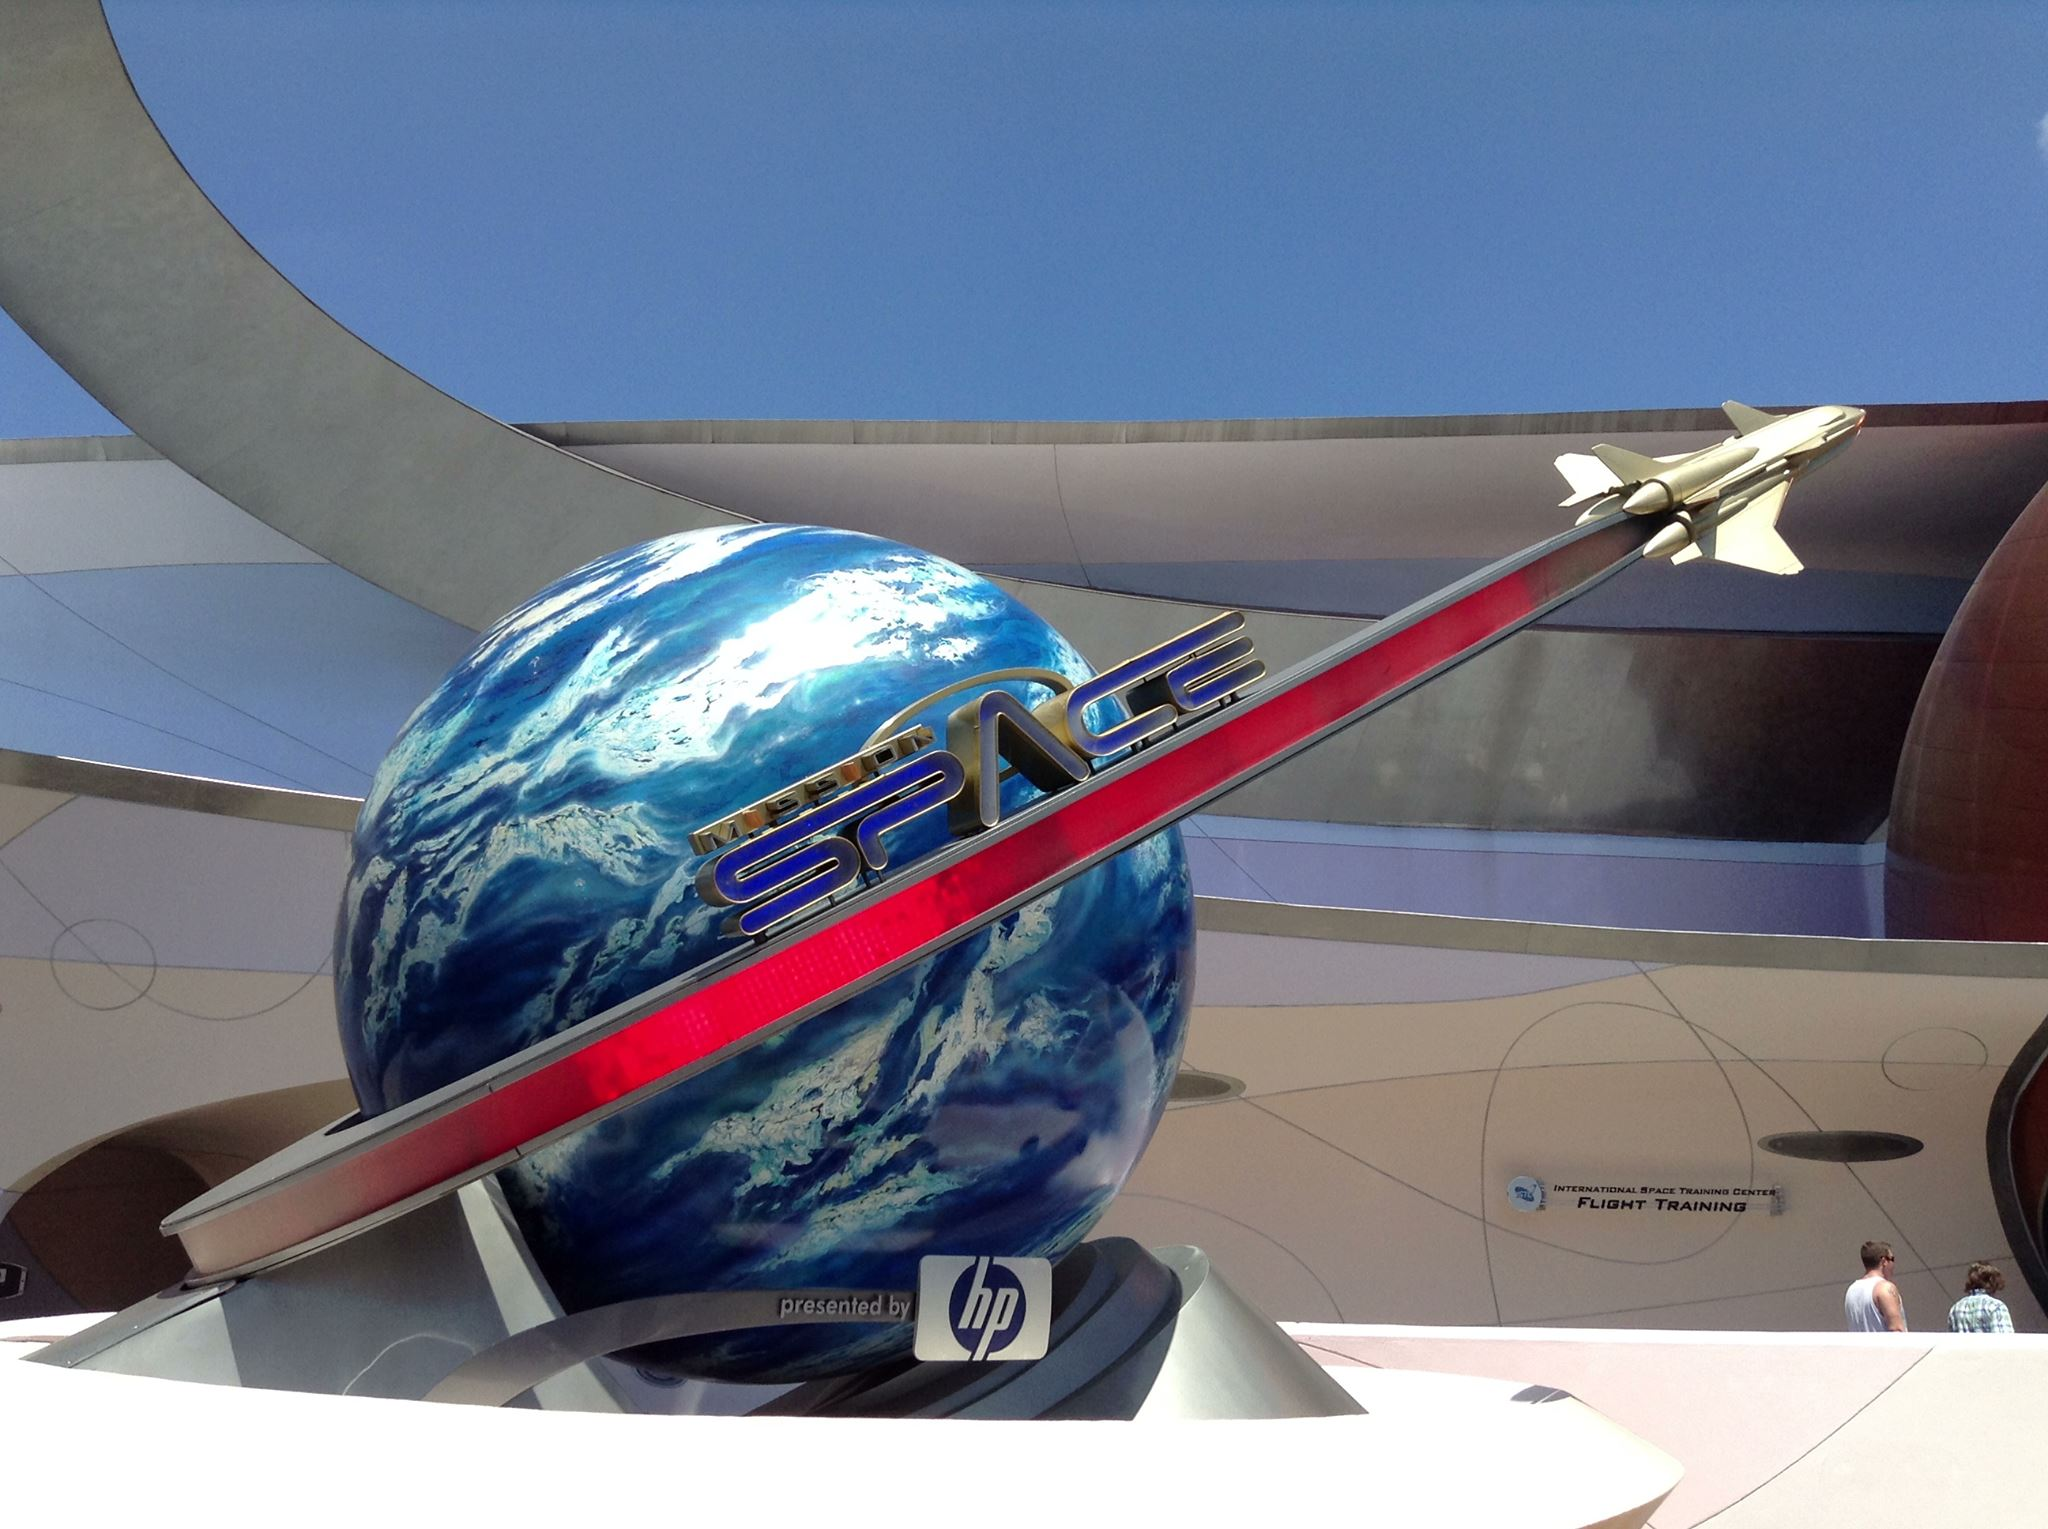 Wordless Wednesday: Mission Space – Green or Orange?